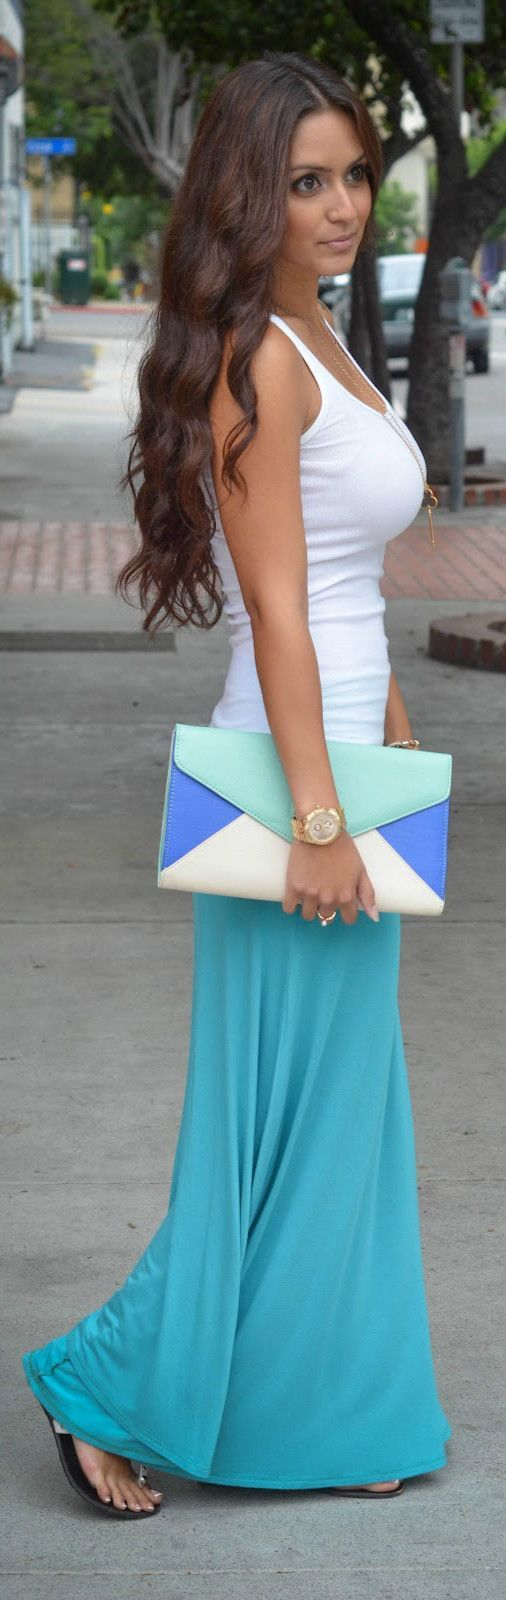 Simple, stylish, and hippyishly elegant... The long skirt dress combined with the tight tank top and cool handbag make it a nice summer outfit.